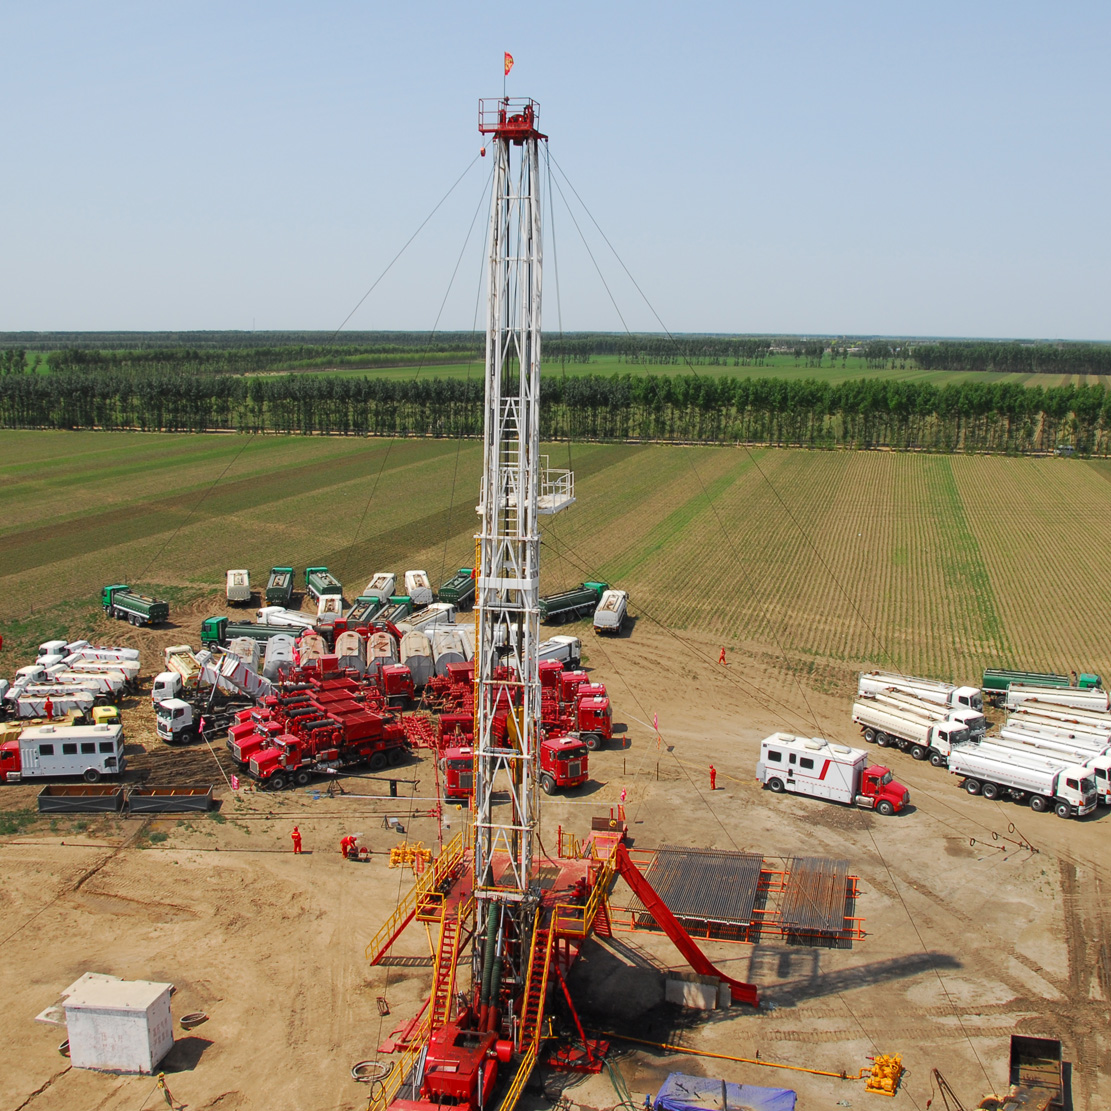 WHOM DO OIL & GAS RECRUITERS IN HOUSTON WANT TO HIRE?